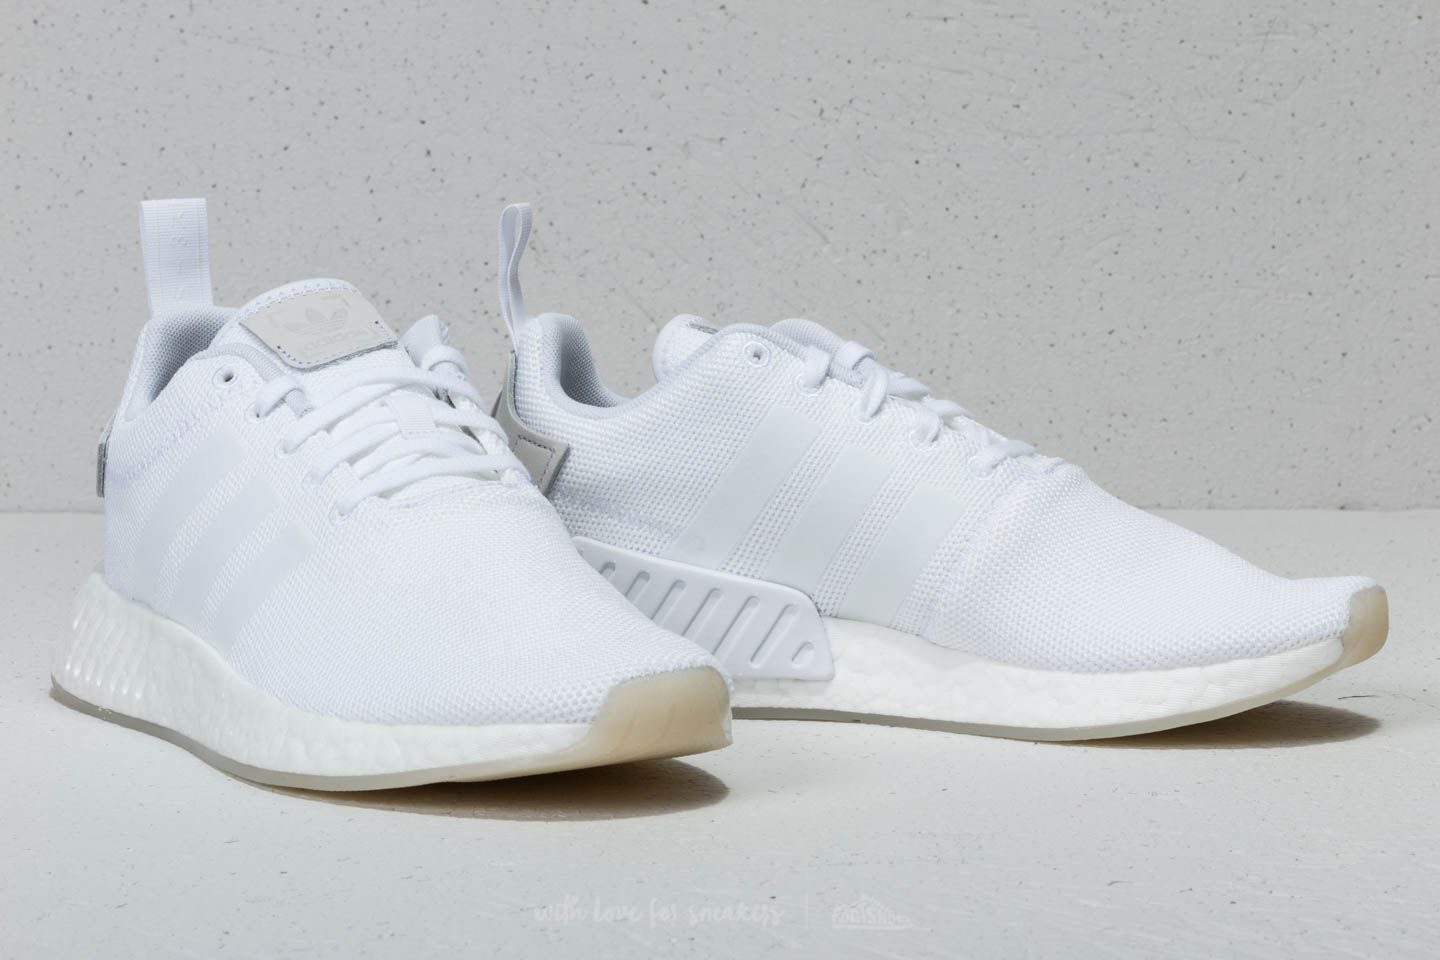 adidas NMD R2 Ftw White  Ftw White  Ftw White at a great price 84 € 54906c356cbc